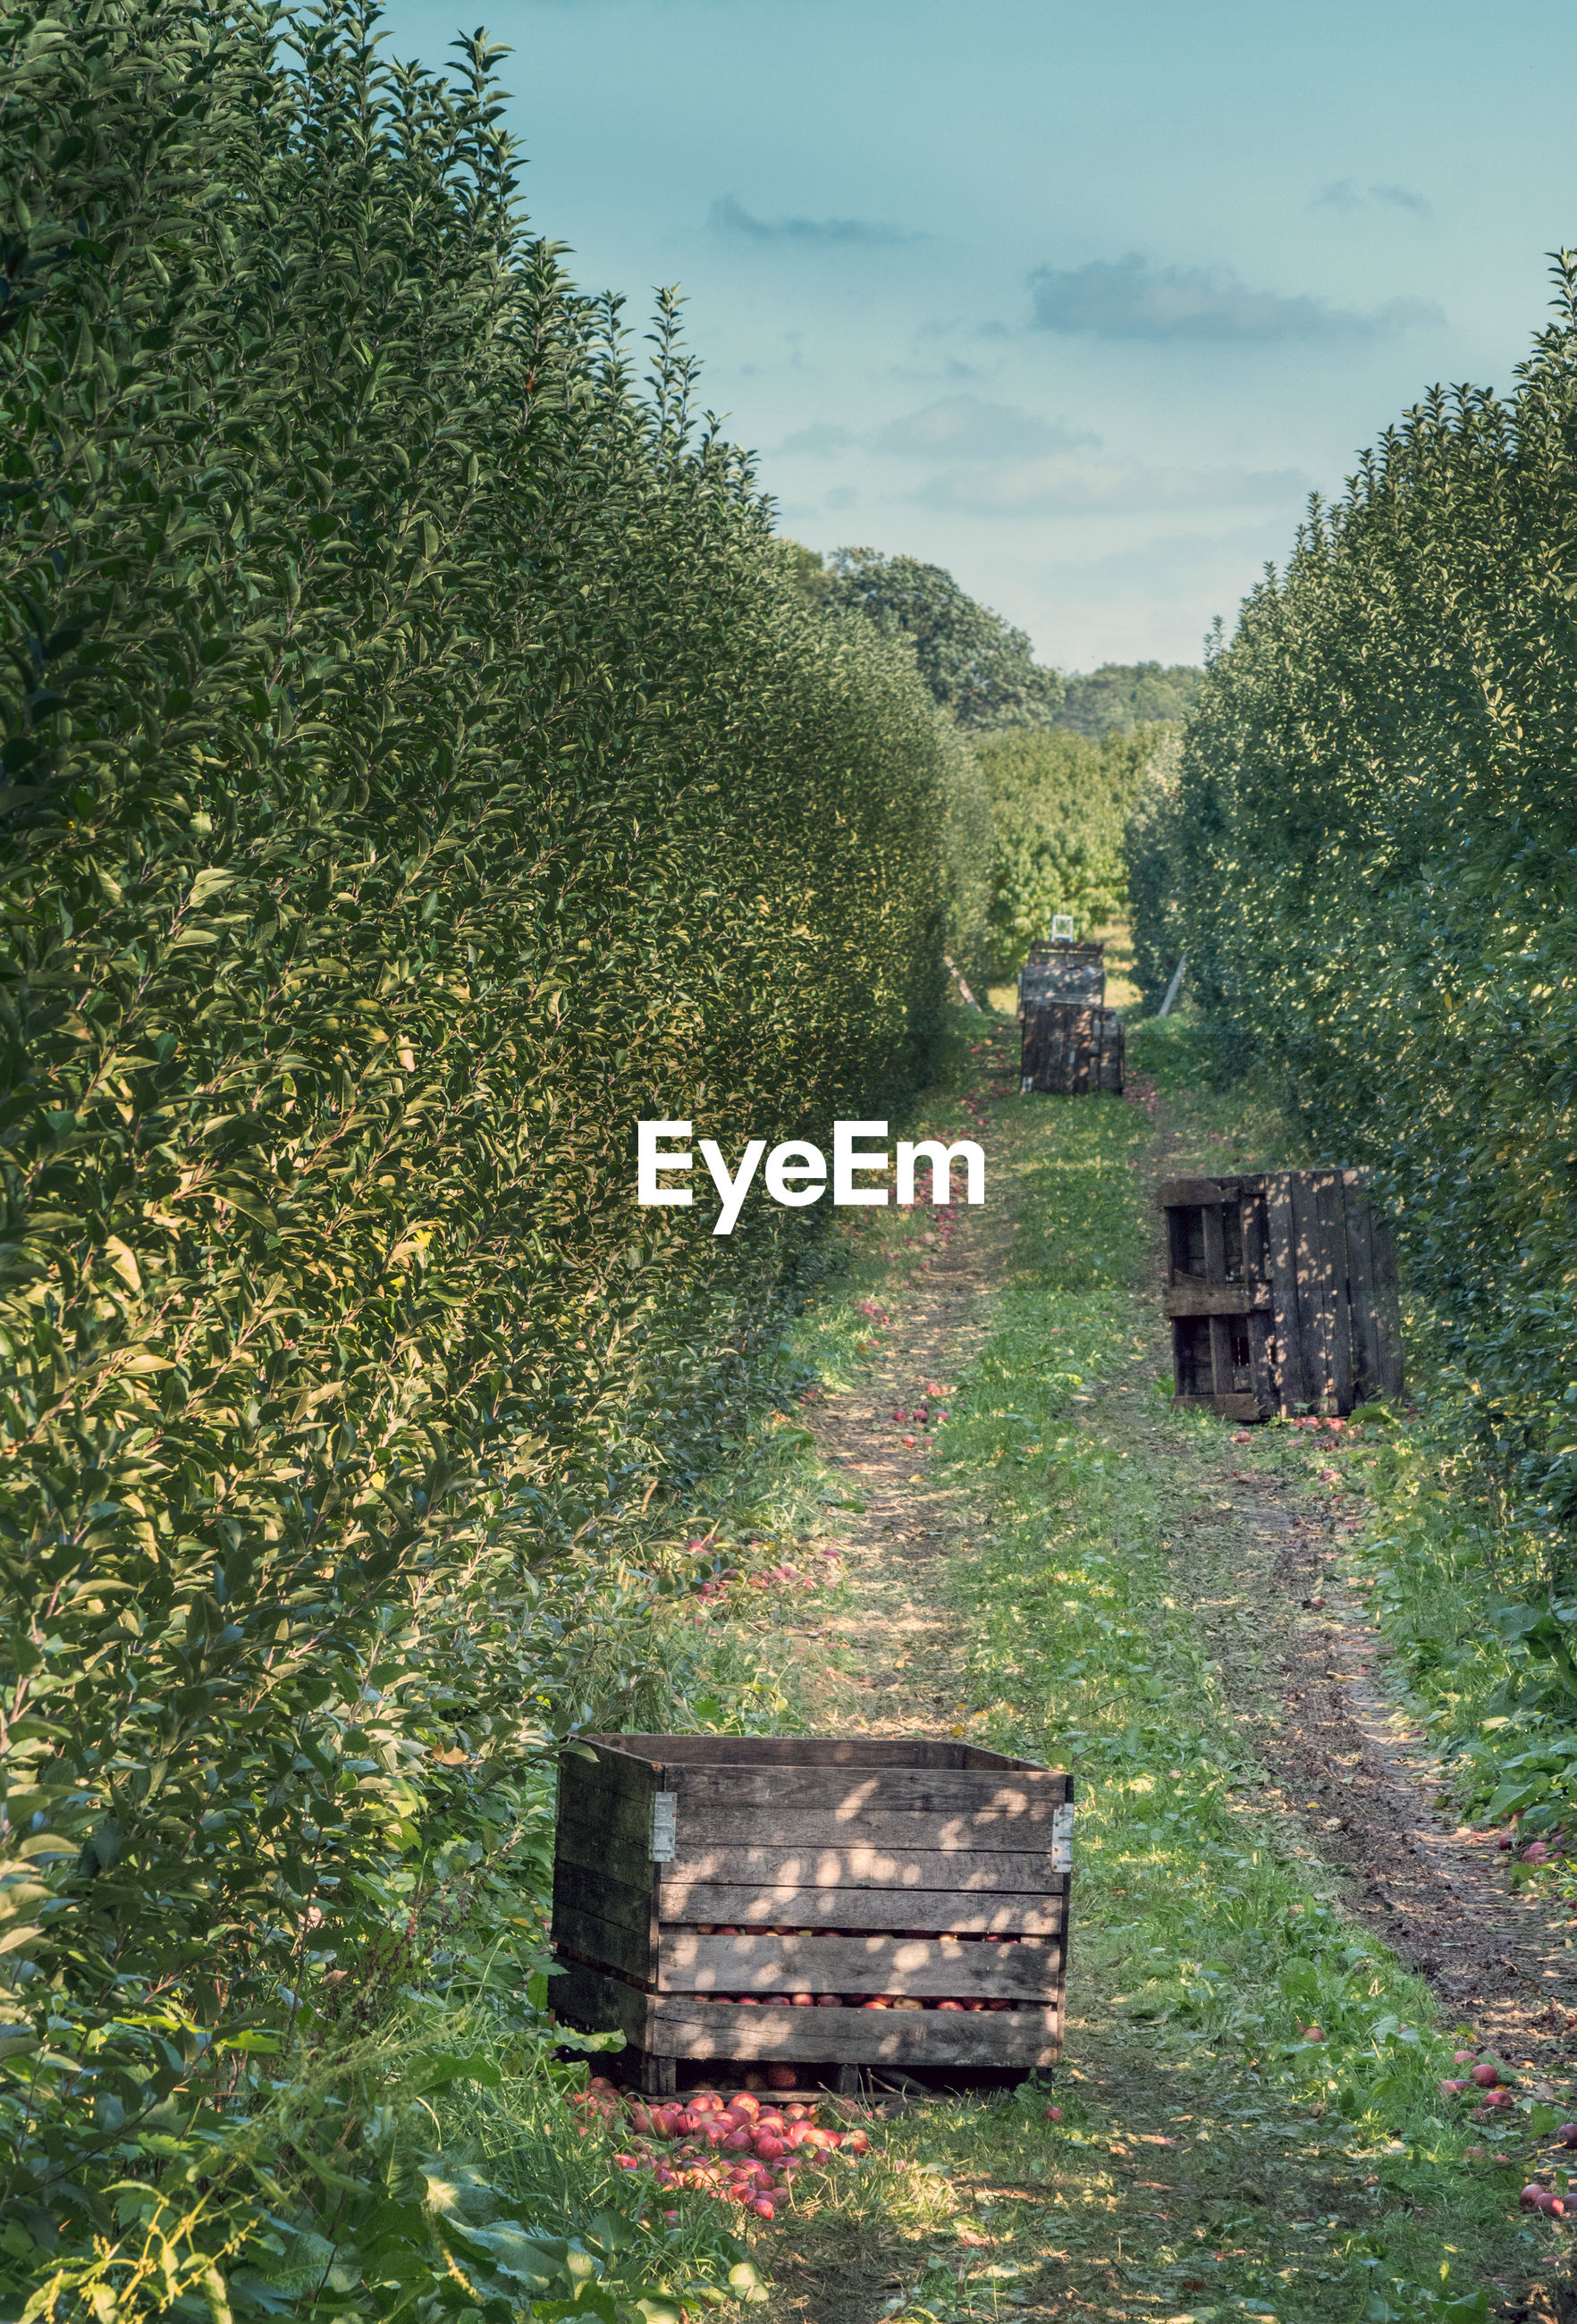 Crates of fresh michigan apples are being picked in this apple orchard in michigan usa